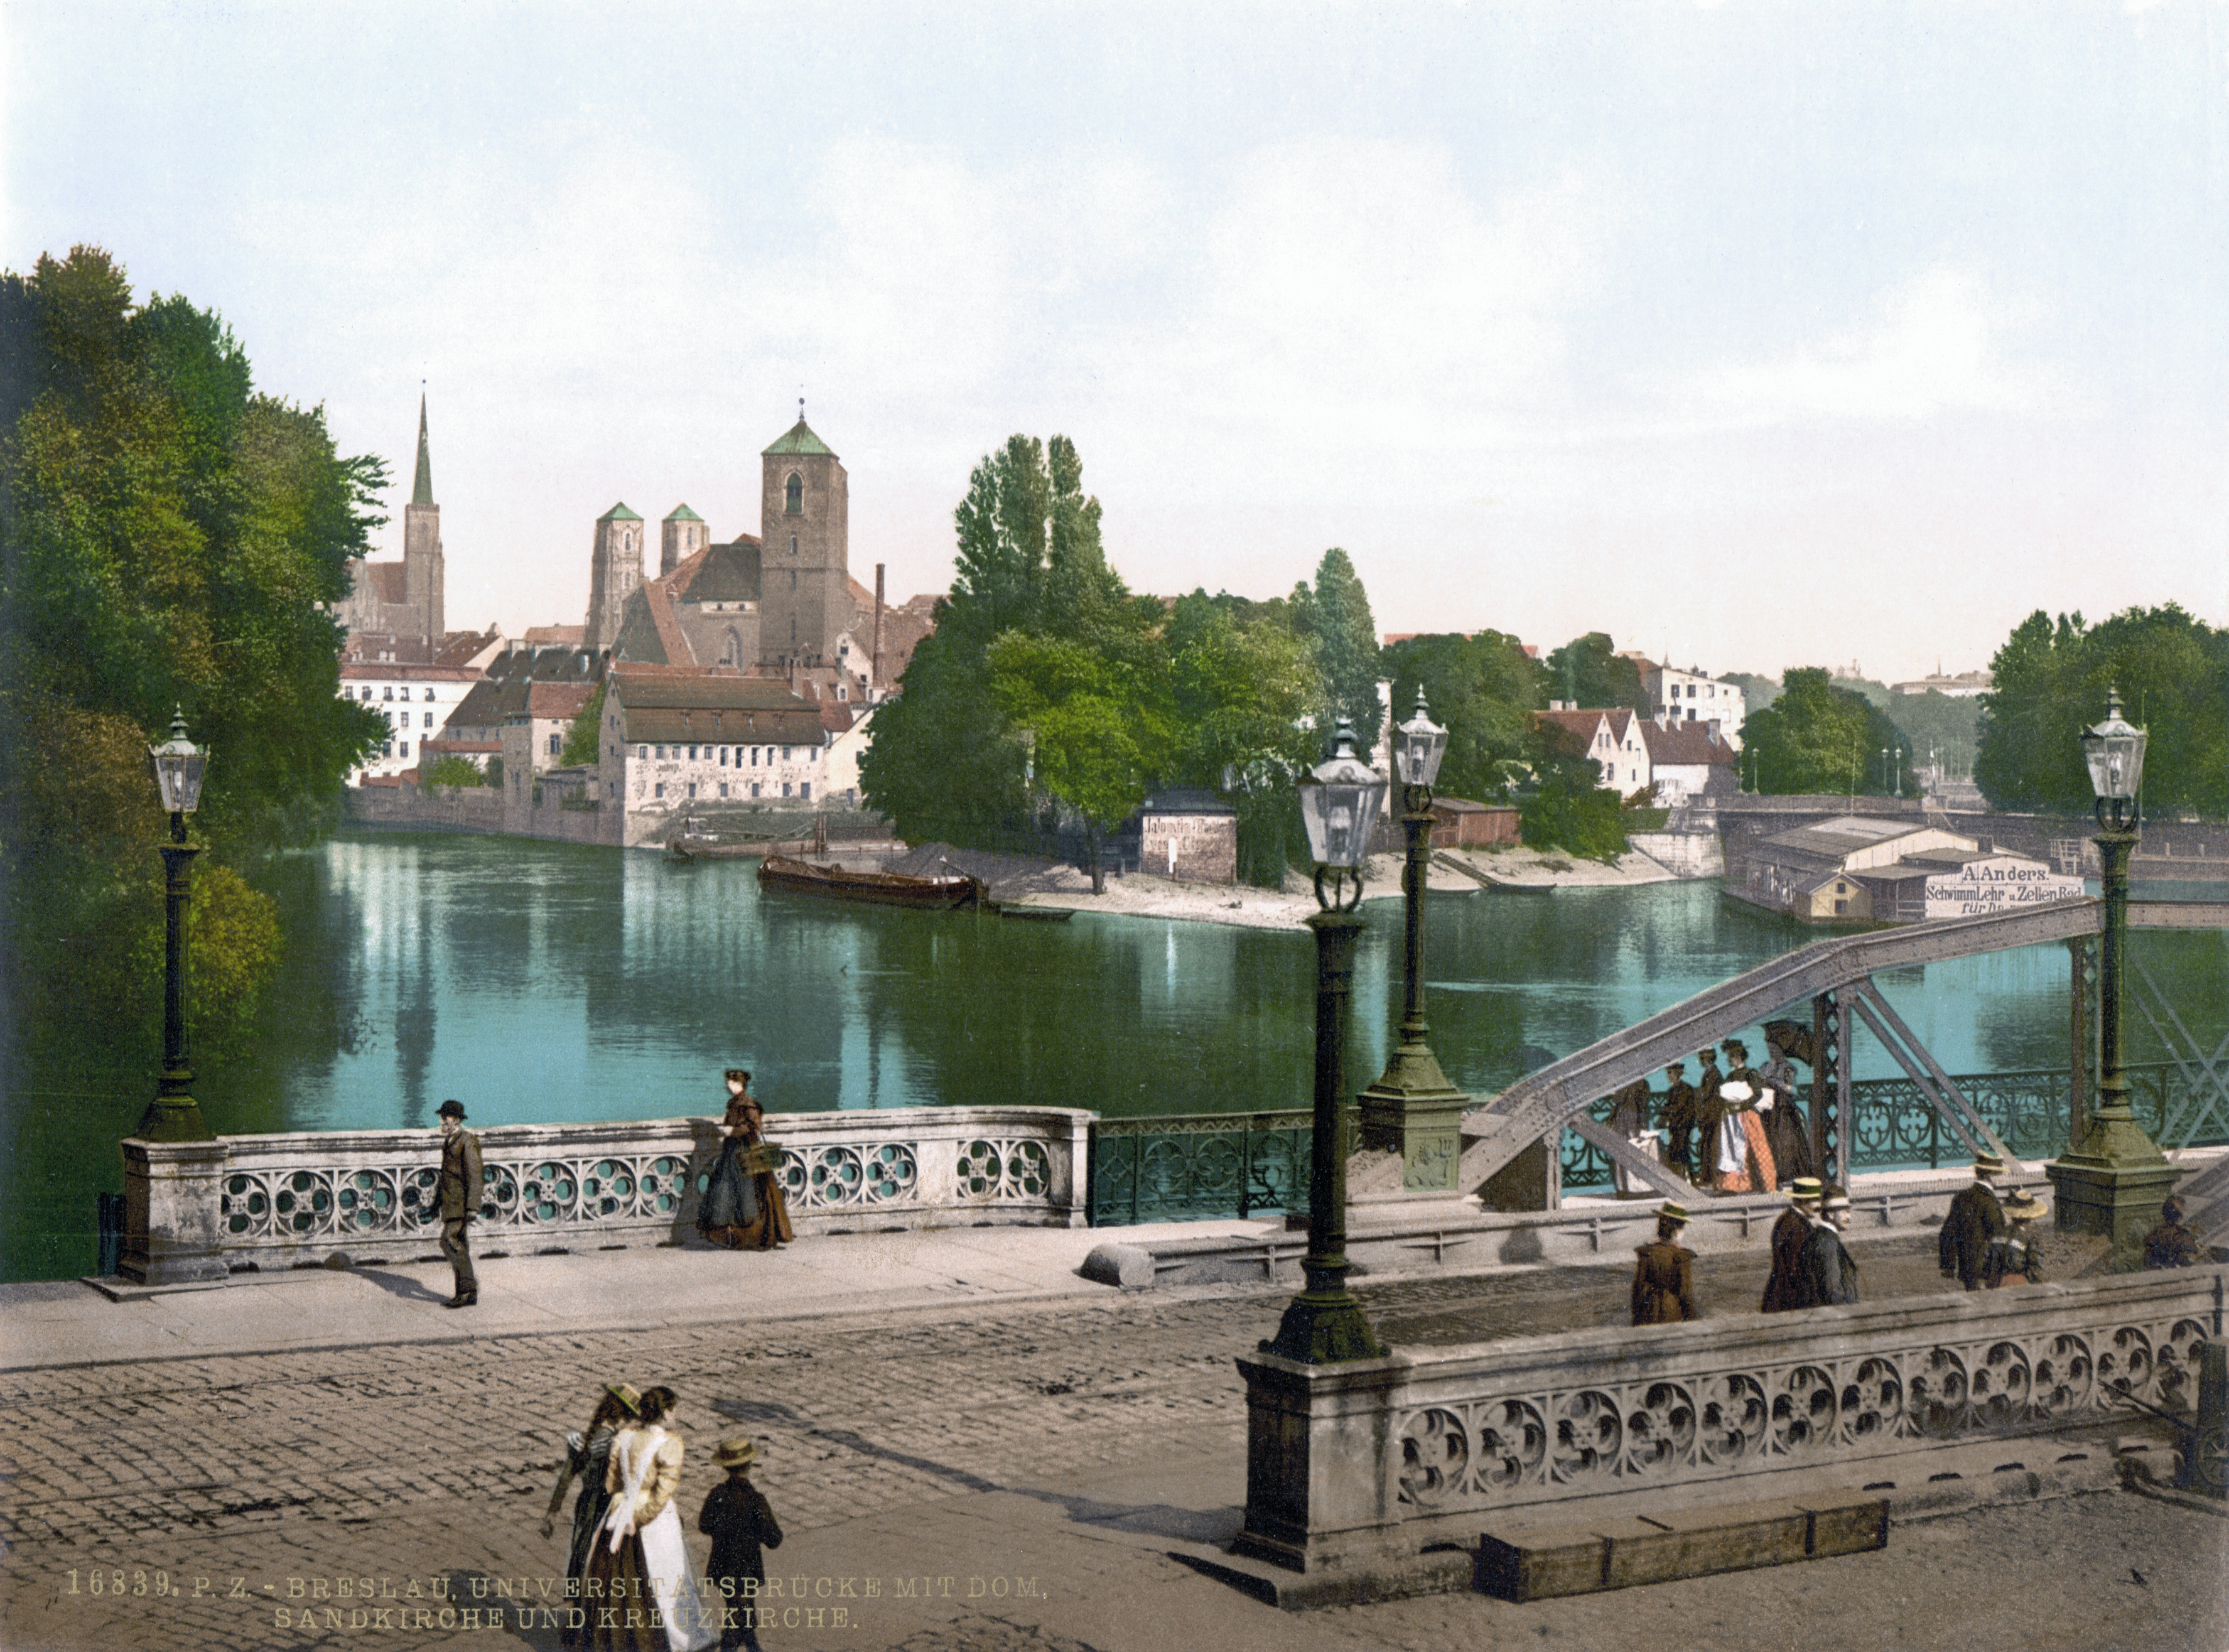 https://upload.wikimedia.org/wikipedia/commons/8/8d/University_Bridge_with_Cathedral%2C_Sandkirche_and_Church_of_the_Cross%2C_Breslau.jpg